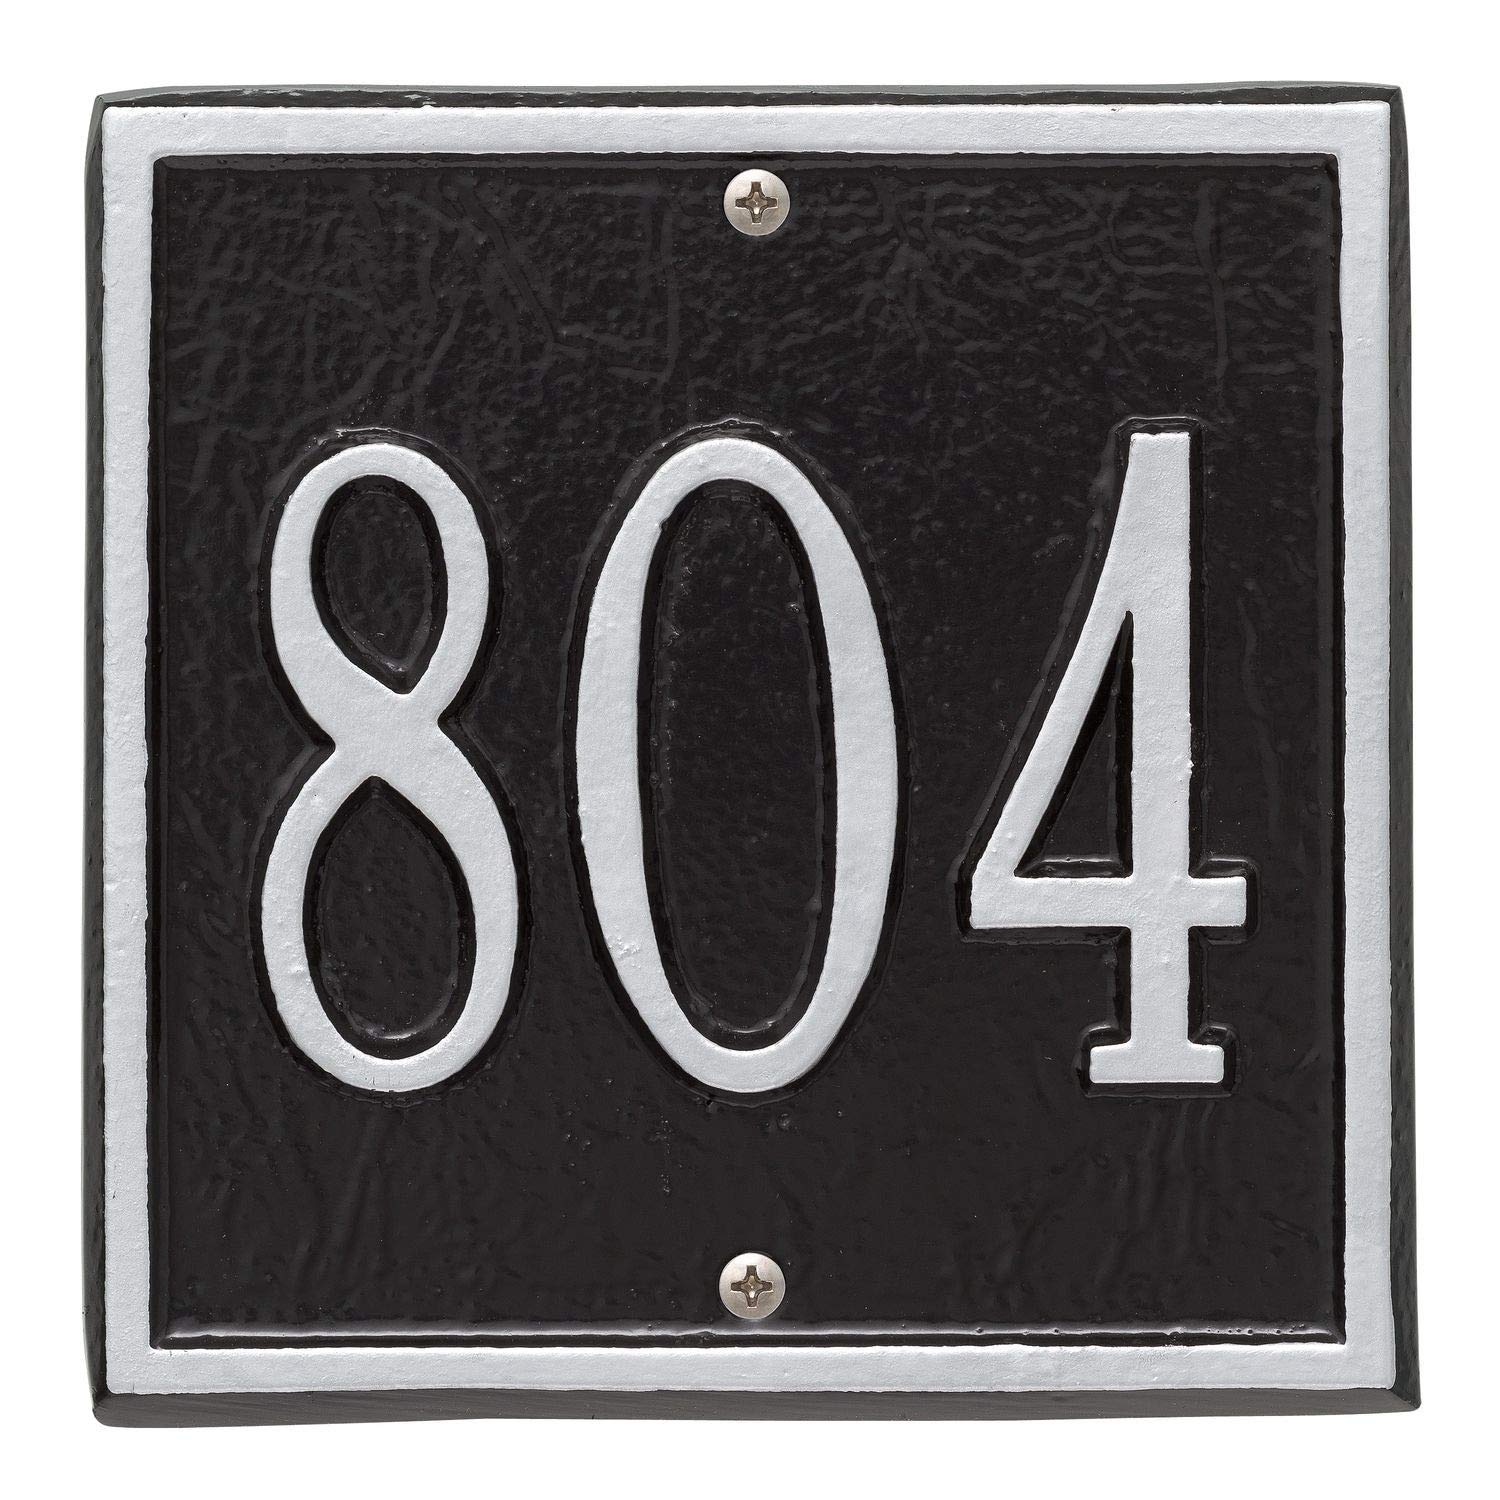 Whitehall Personalized Cast Metal Address Plaque - Square 6'' x 6'' House Number Sign - Allows Special Characters - Black/Silver